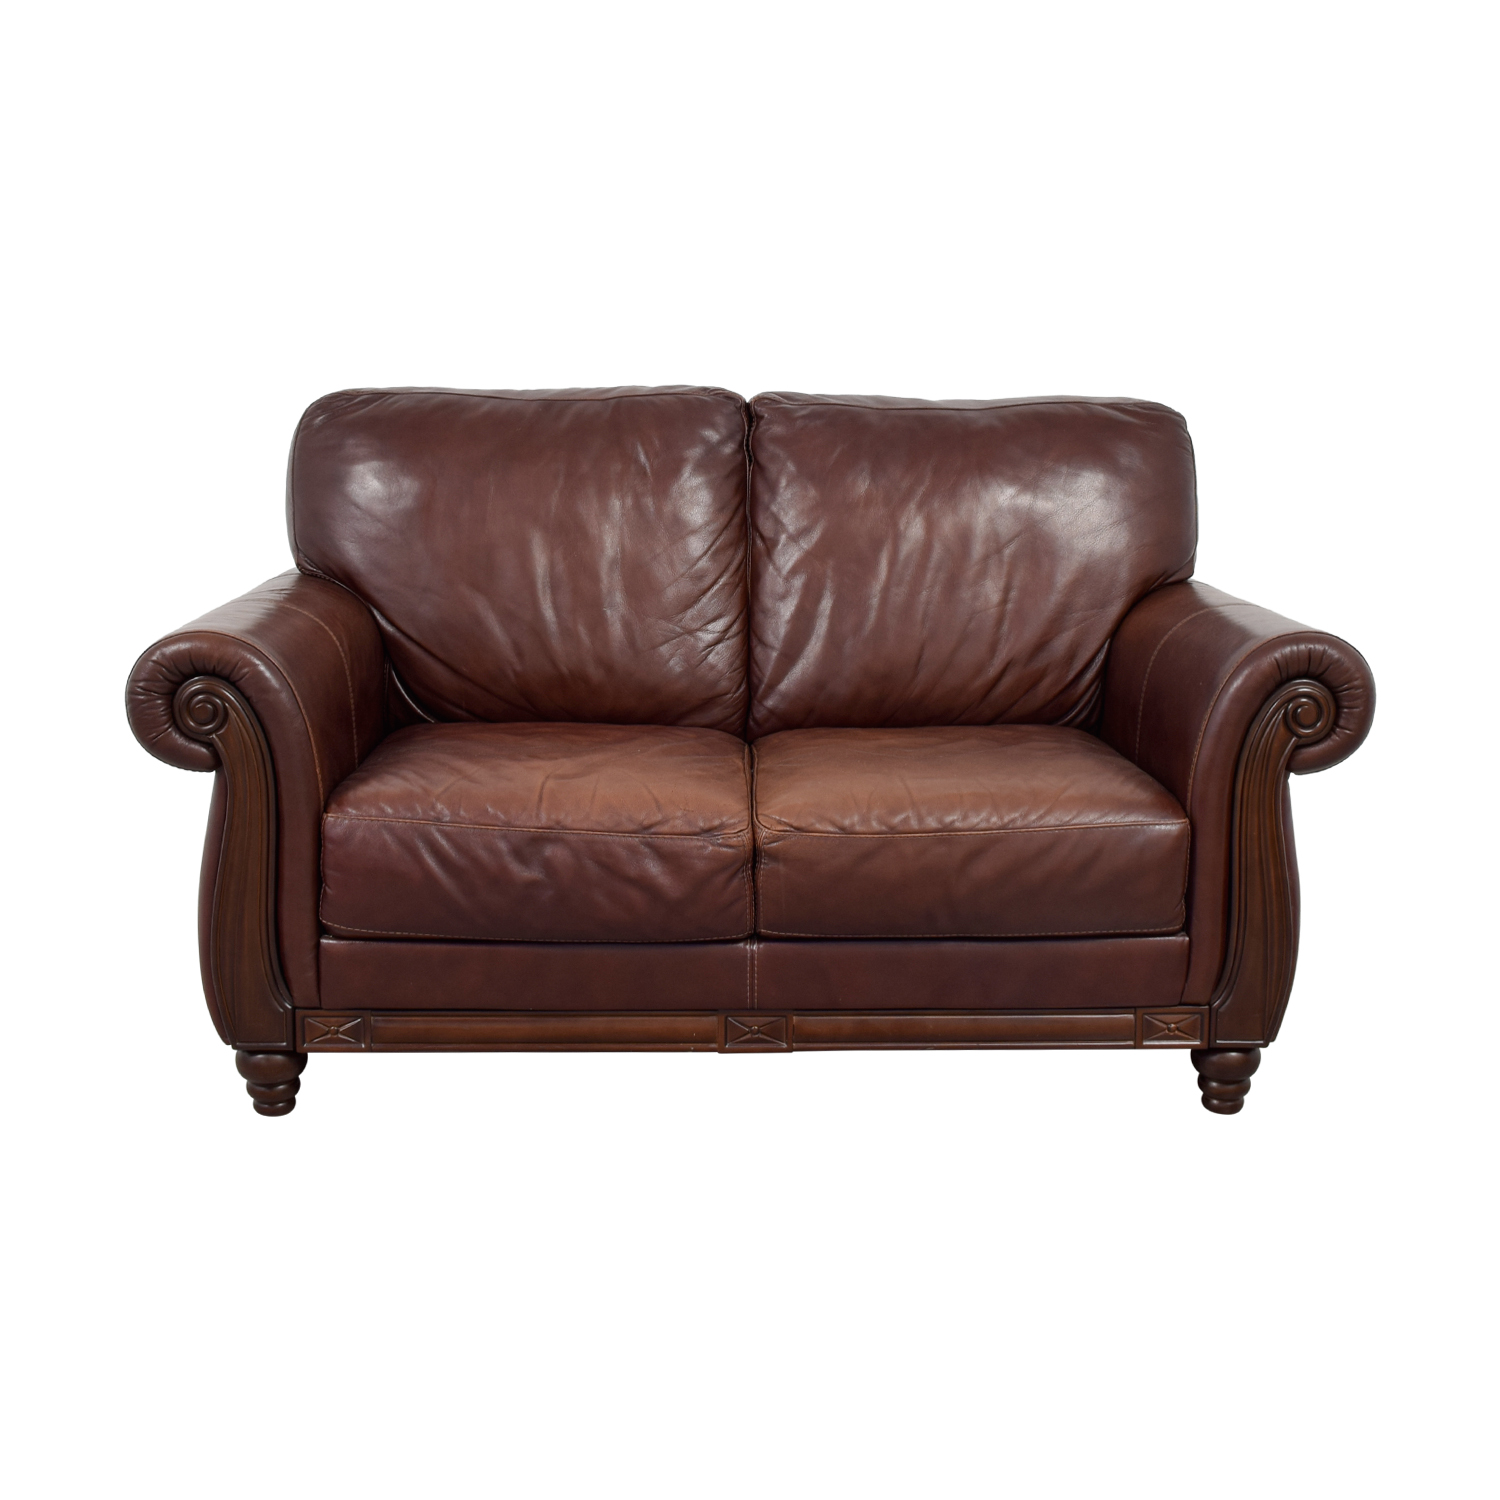 shop Macy's Brown Leather Two-Cushion Loveseat Macy's Loveseats